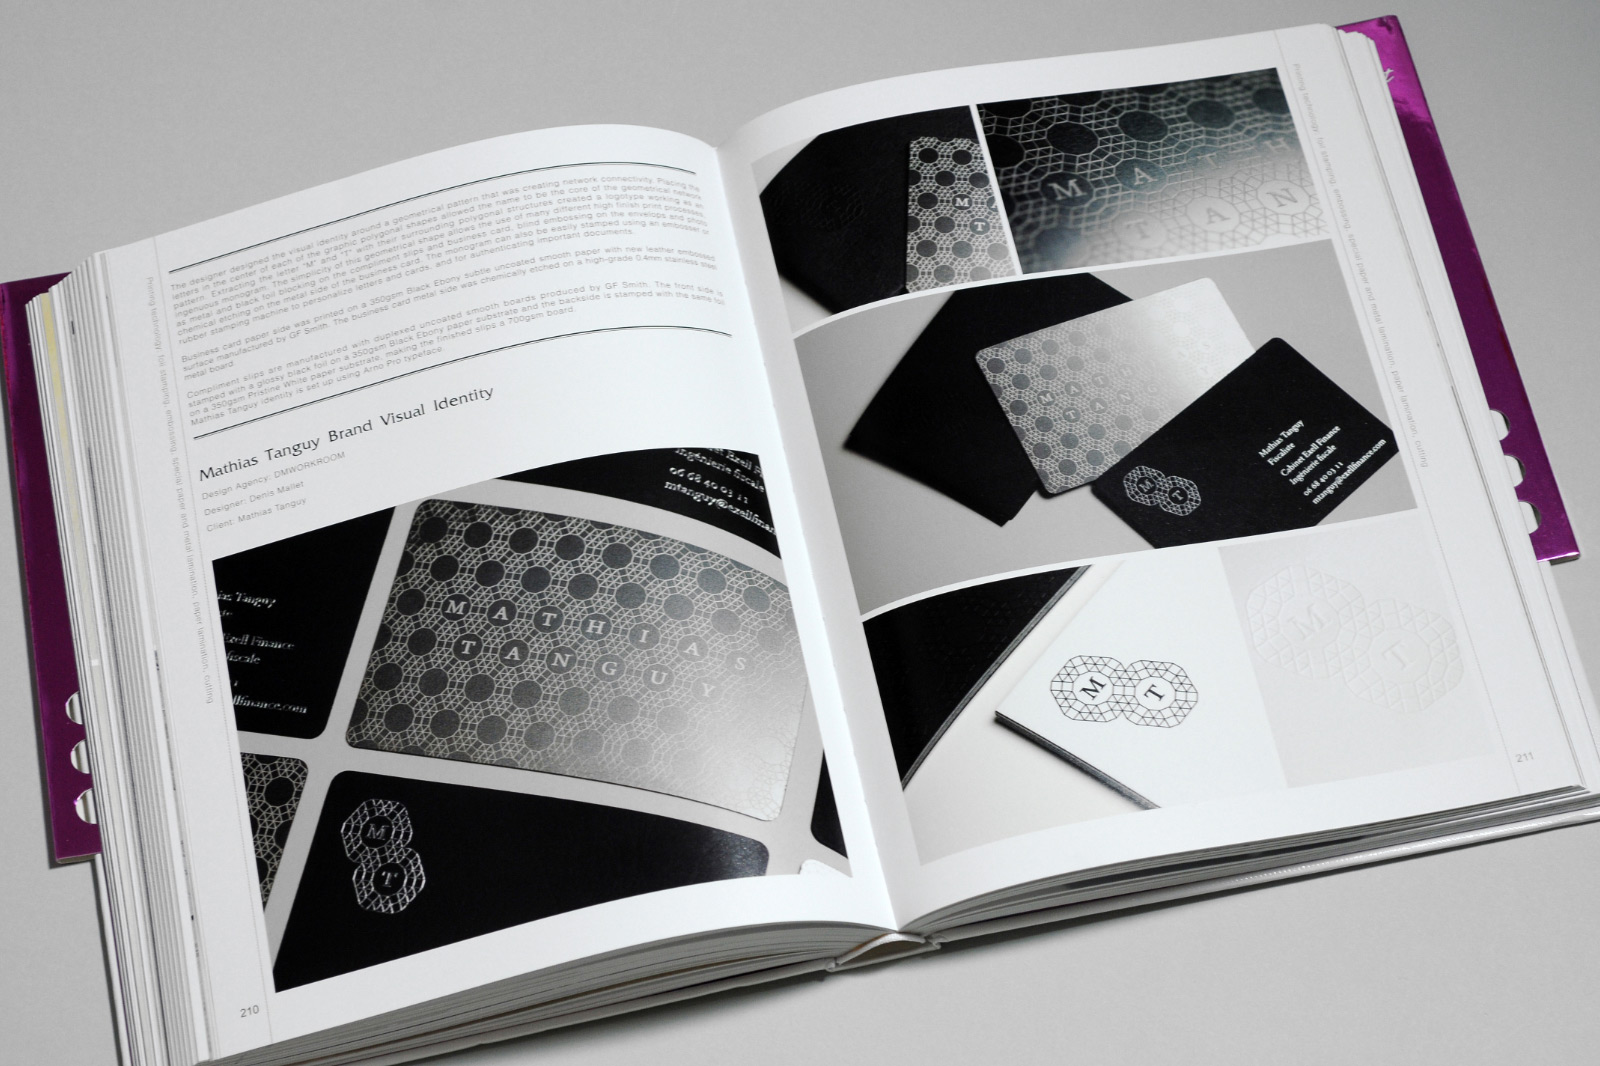 Europa Studio projects featured in Printing Technology published by Artpower International Publishing Co. Limited